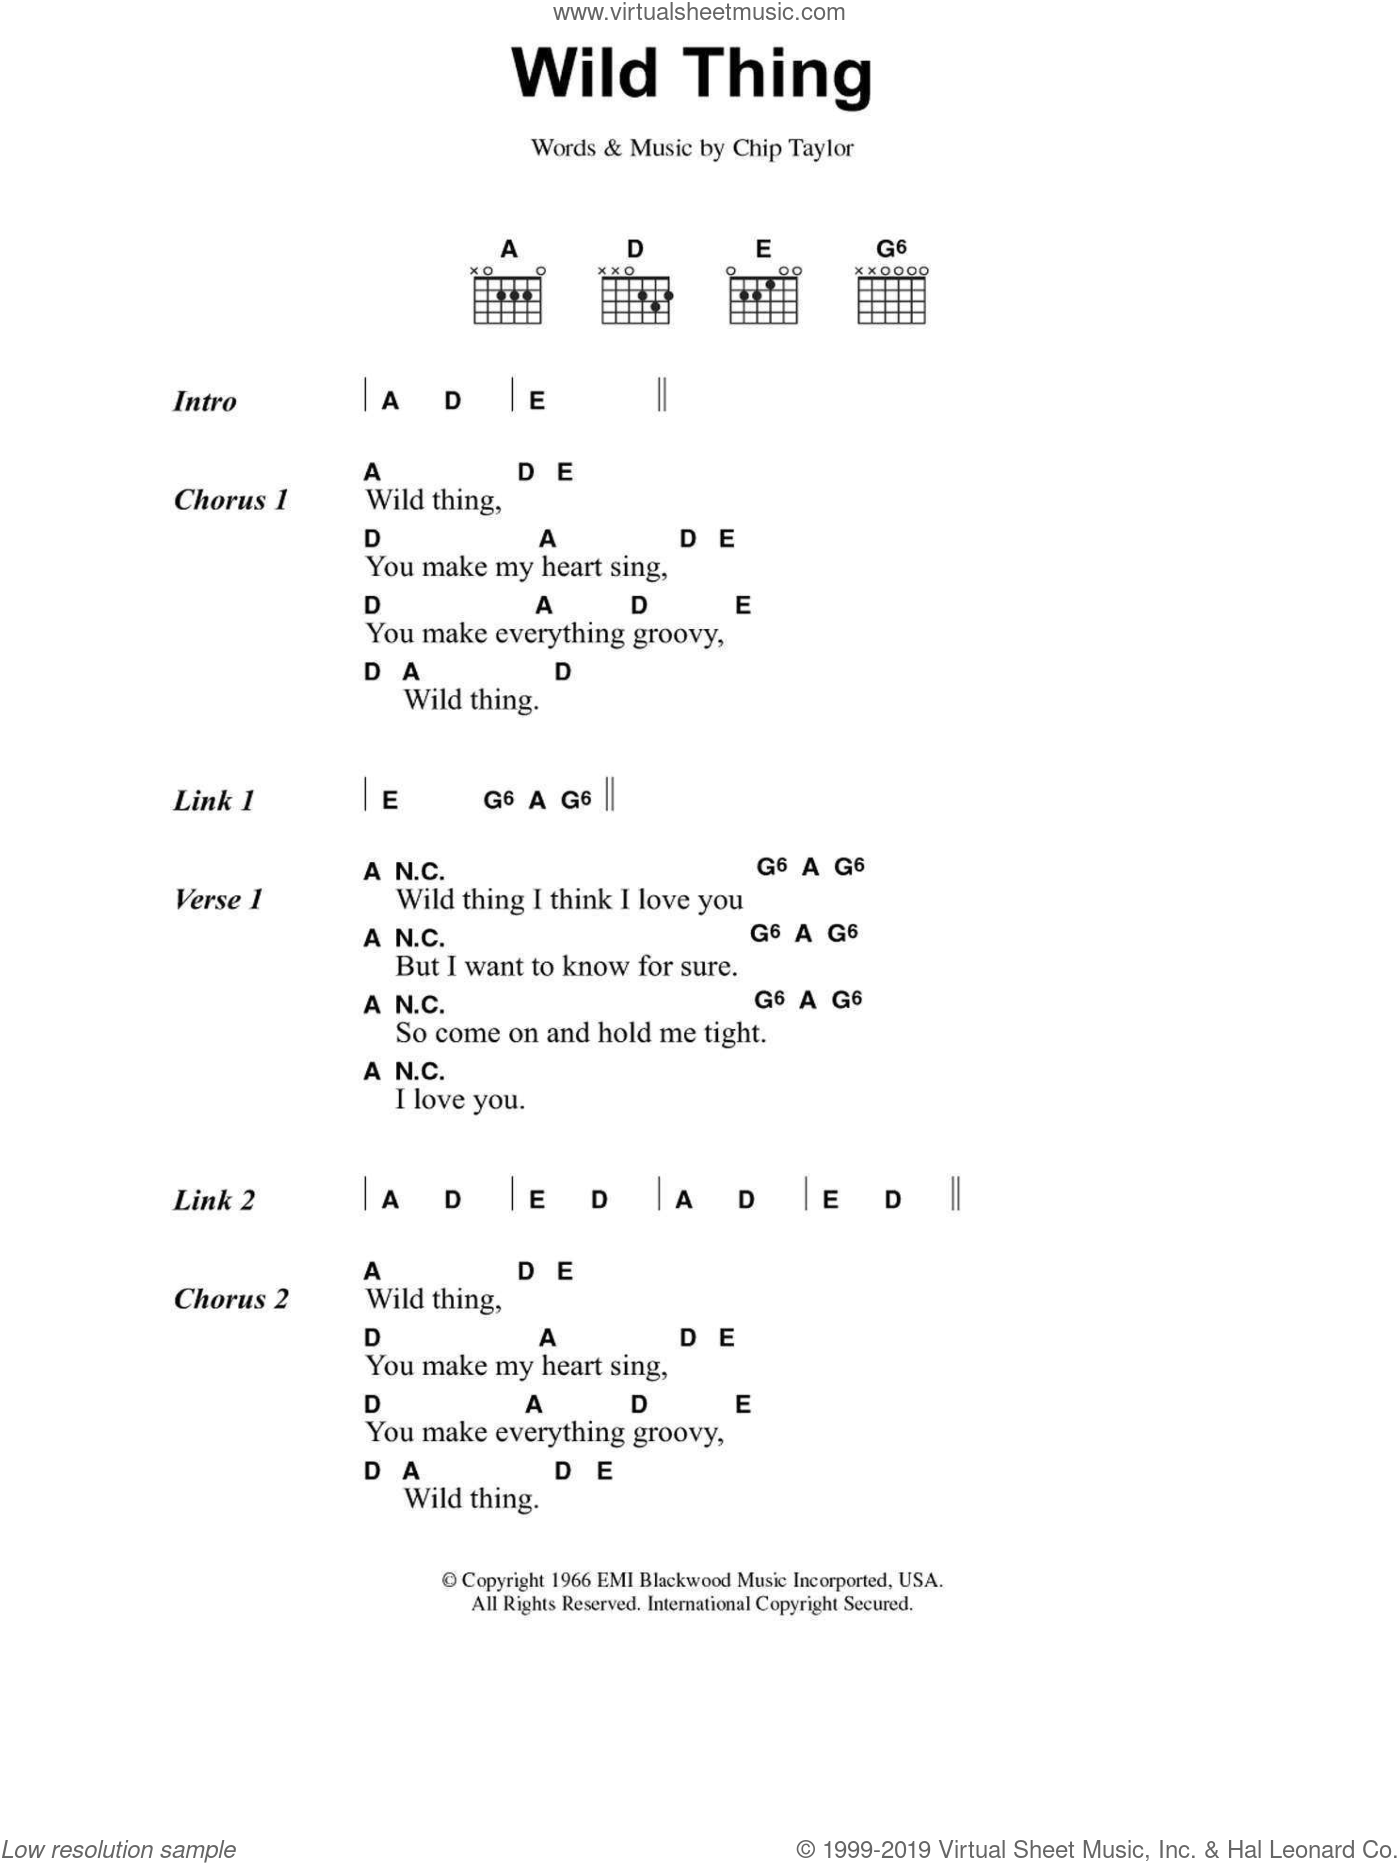 Wild Thing sheet music for guitar (chords) by Chip Taylor